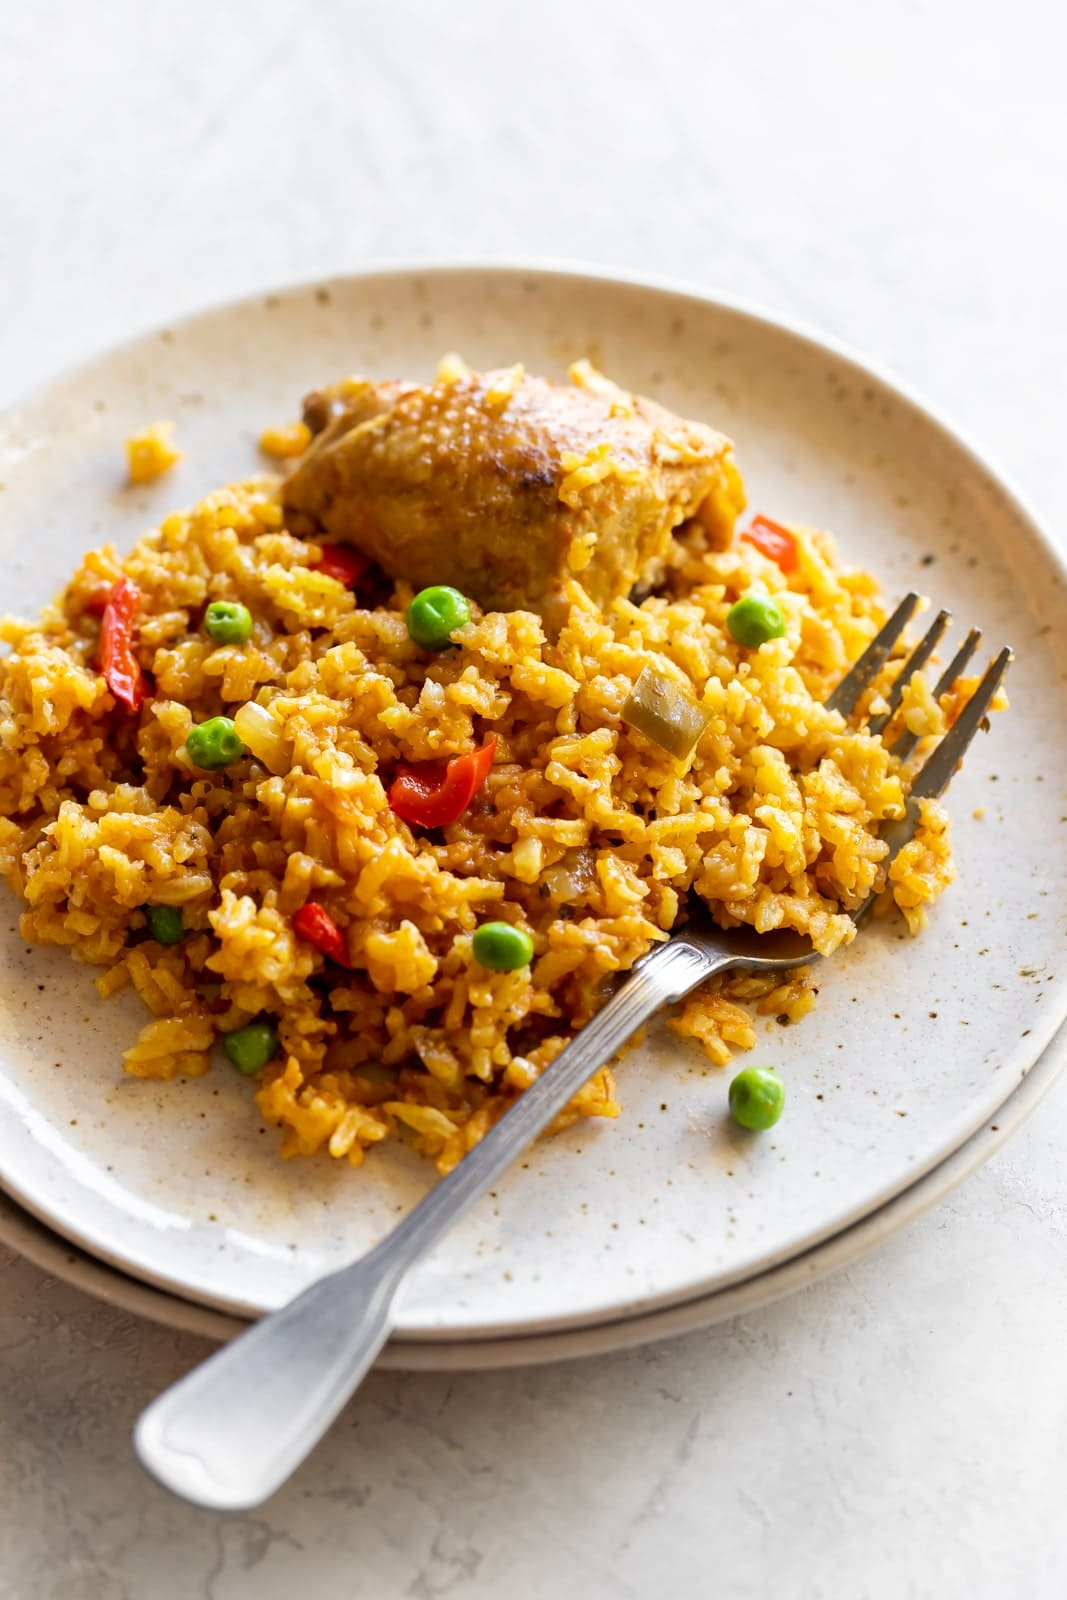 The best comfort food - arroz con pollo! Classic and authentic Cuban-style rice with chicken made with in one-pot with spices, tomato sauce, flavorful chicken thighs and fluffy yellow rice.